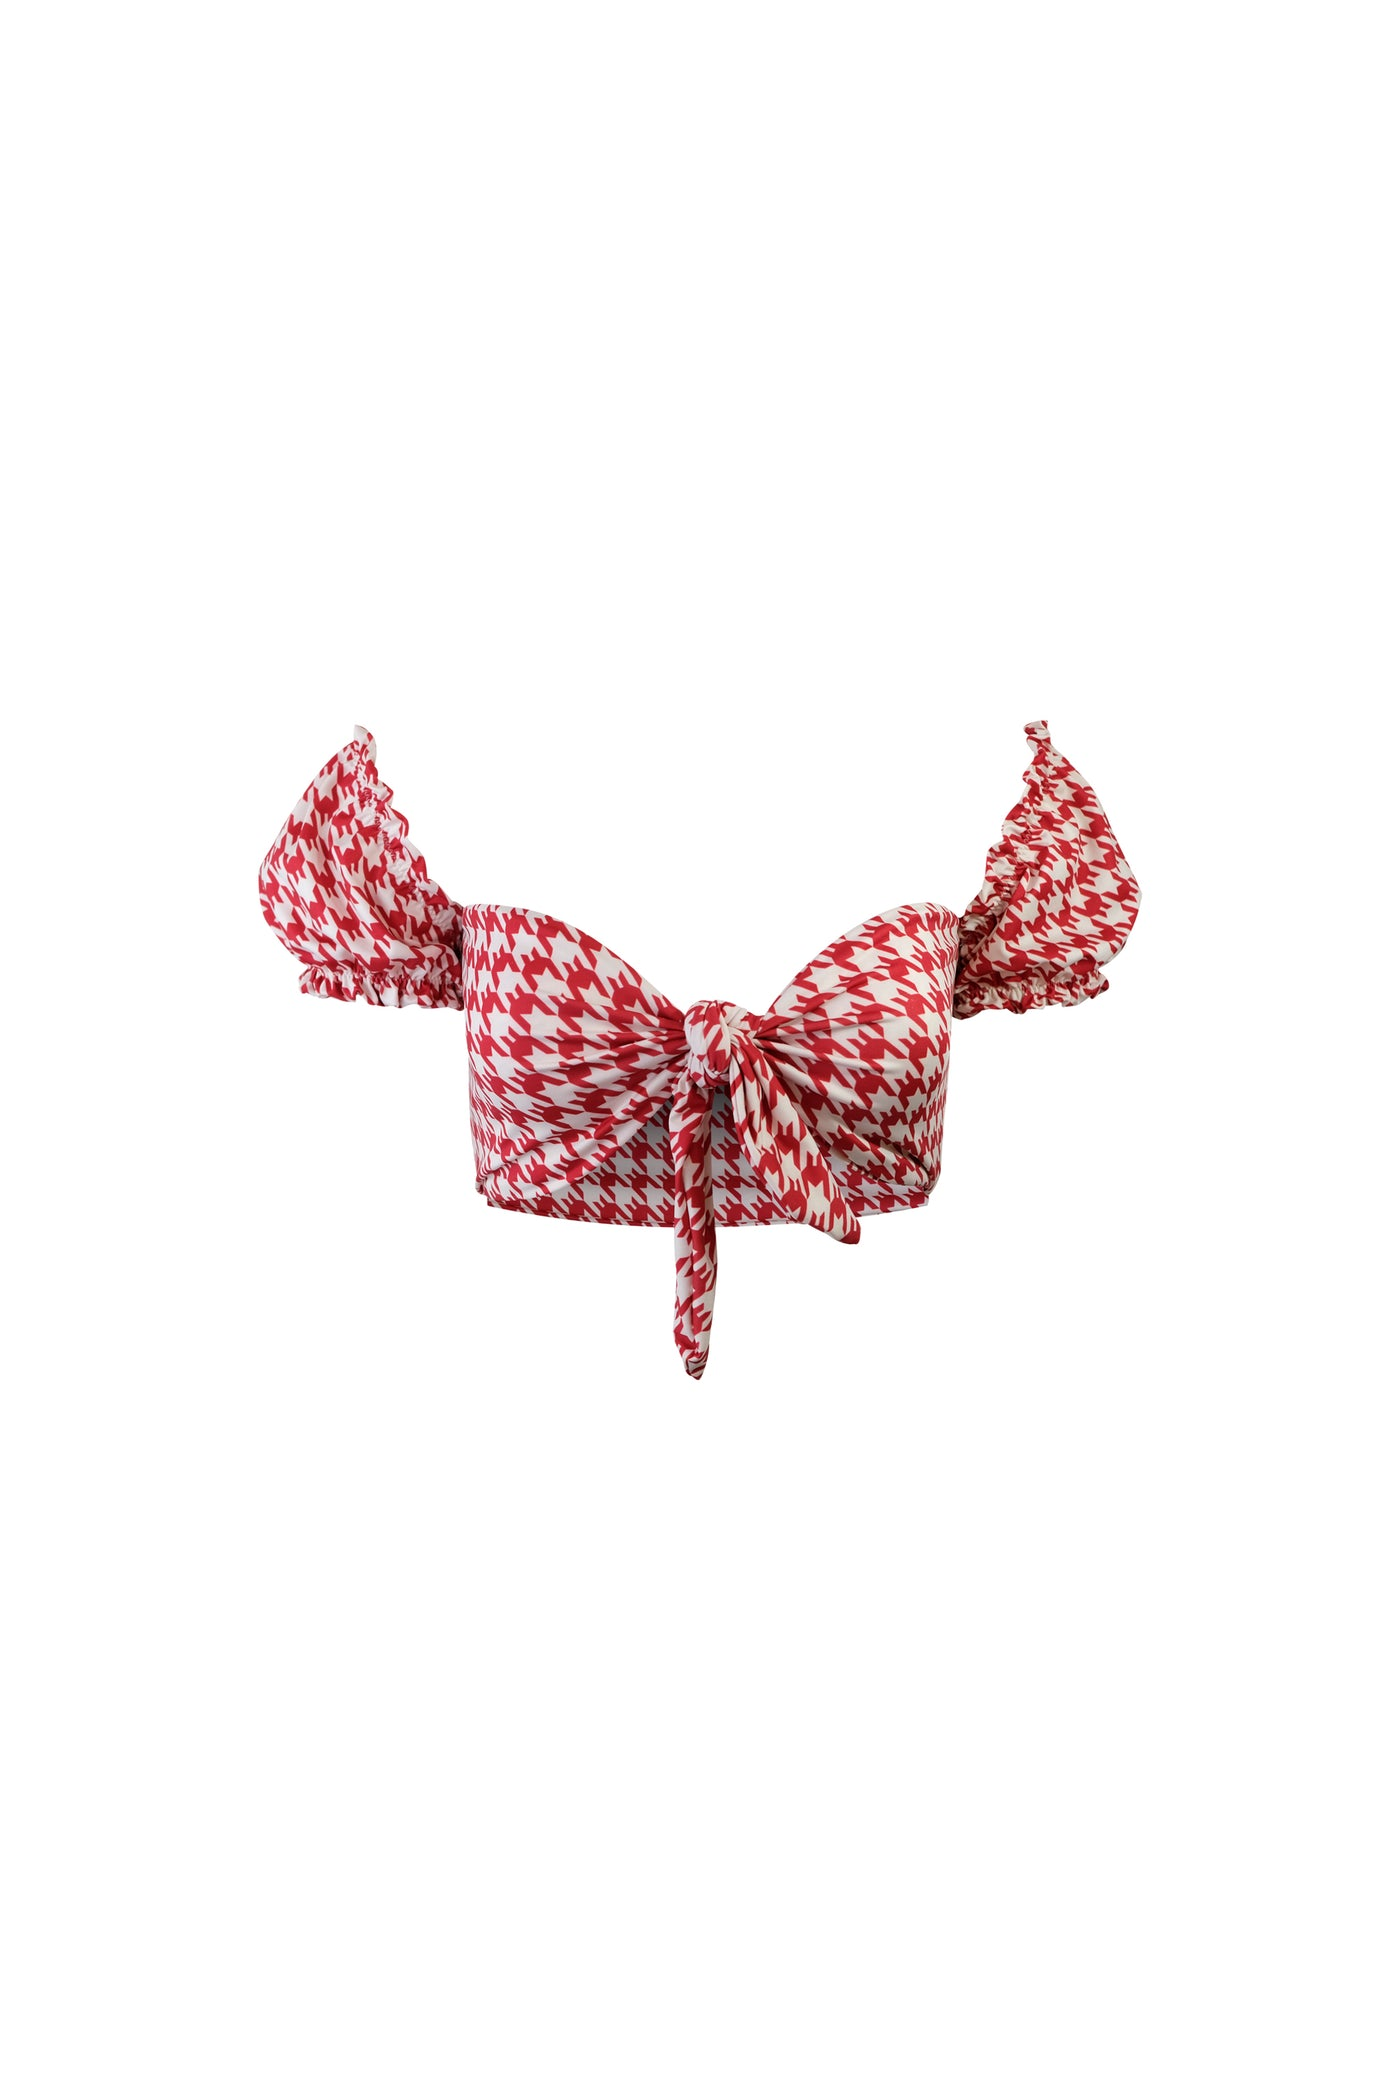 Ruffle Sleeve Top (Red Houndstooth)